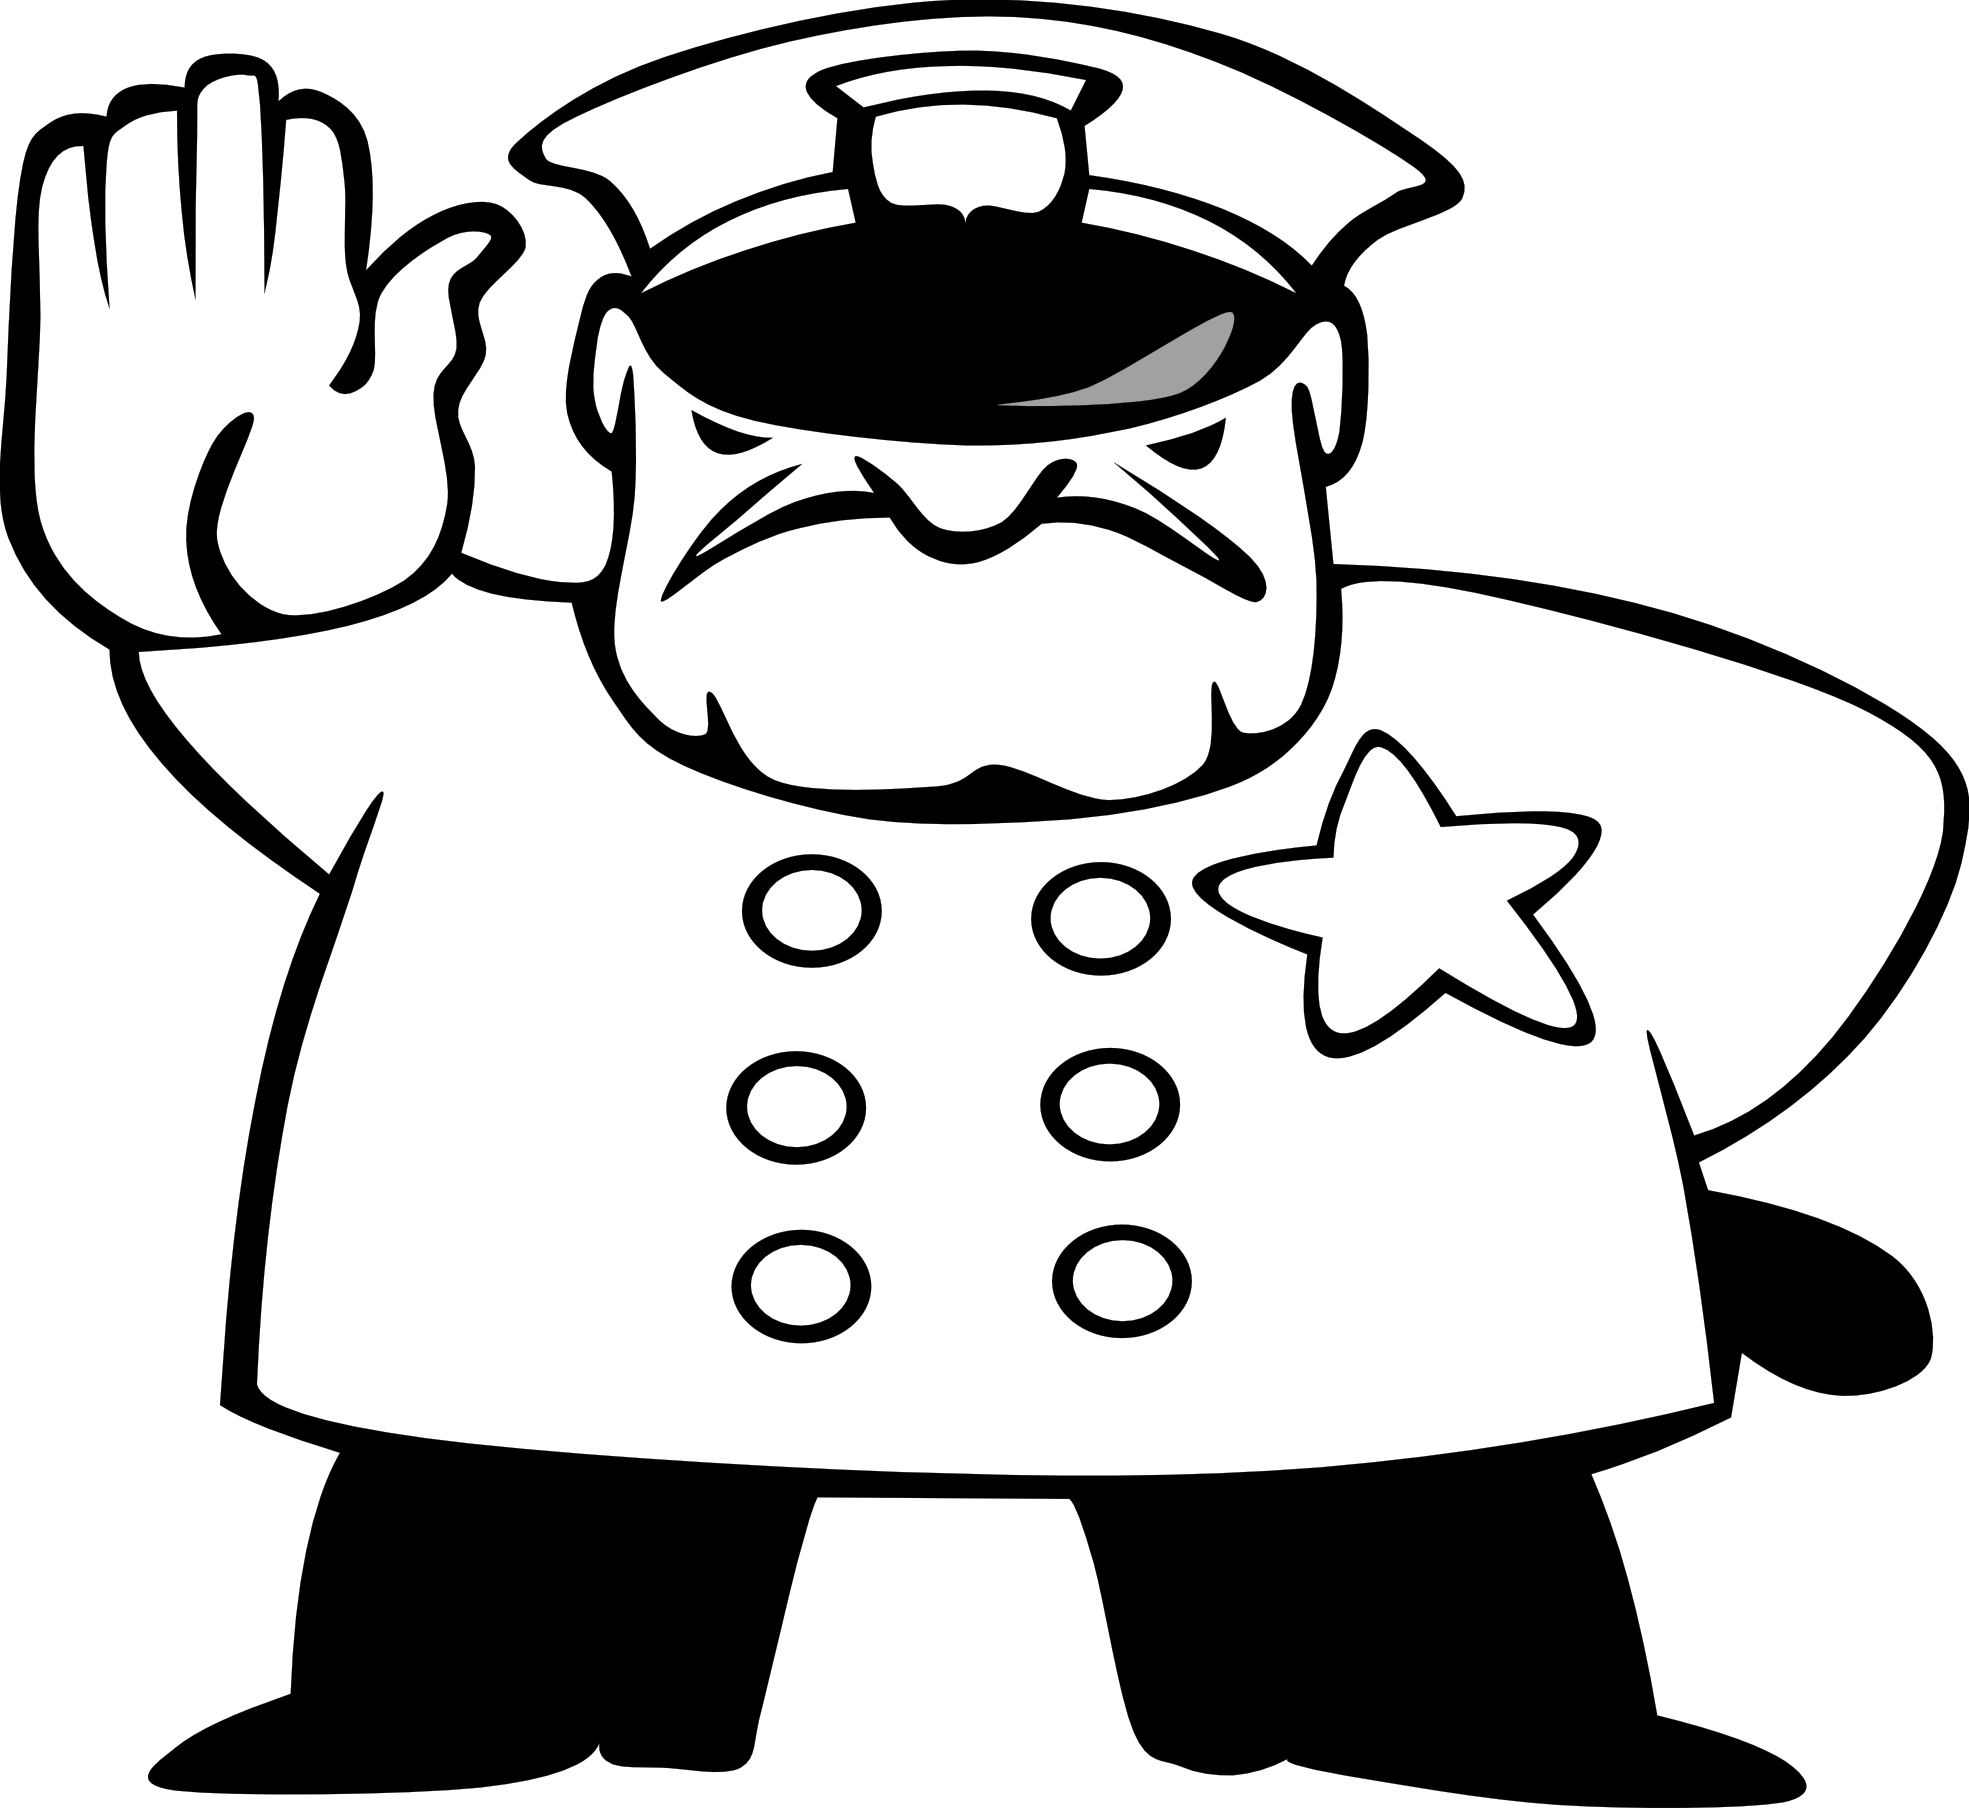 Tool clipart policeman. Police black and white